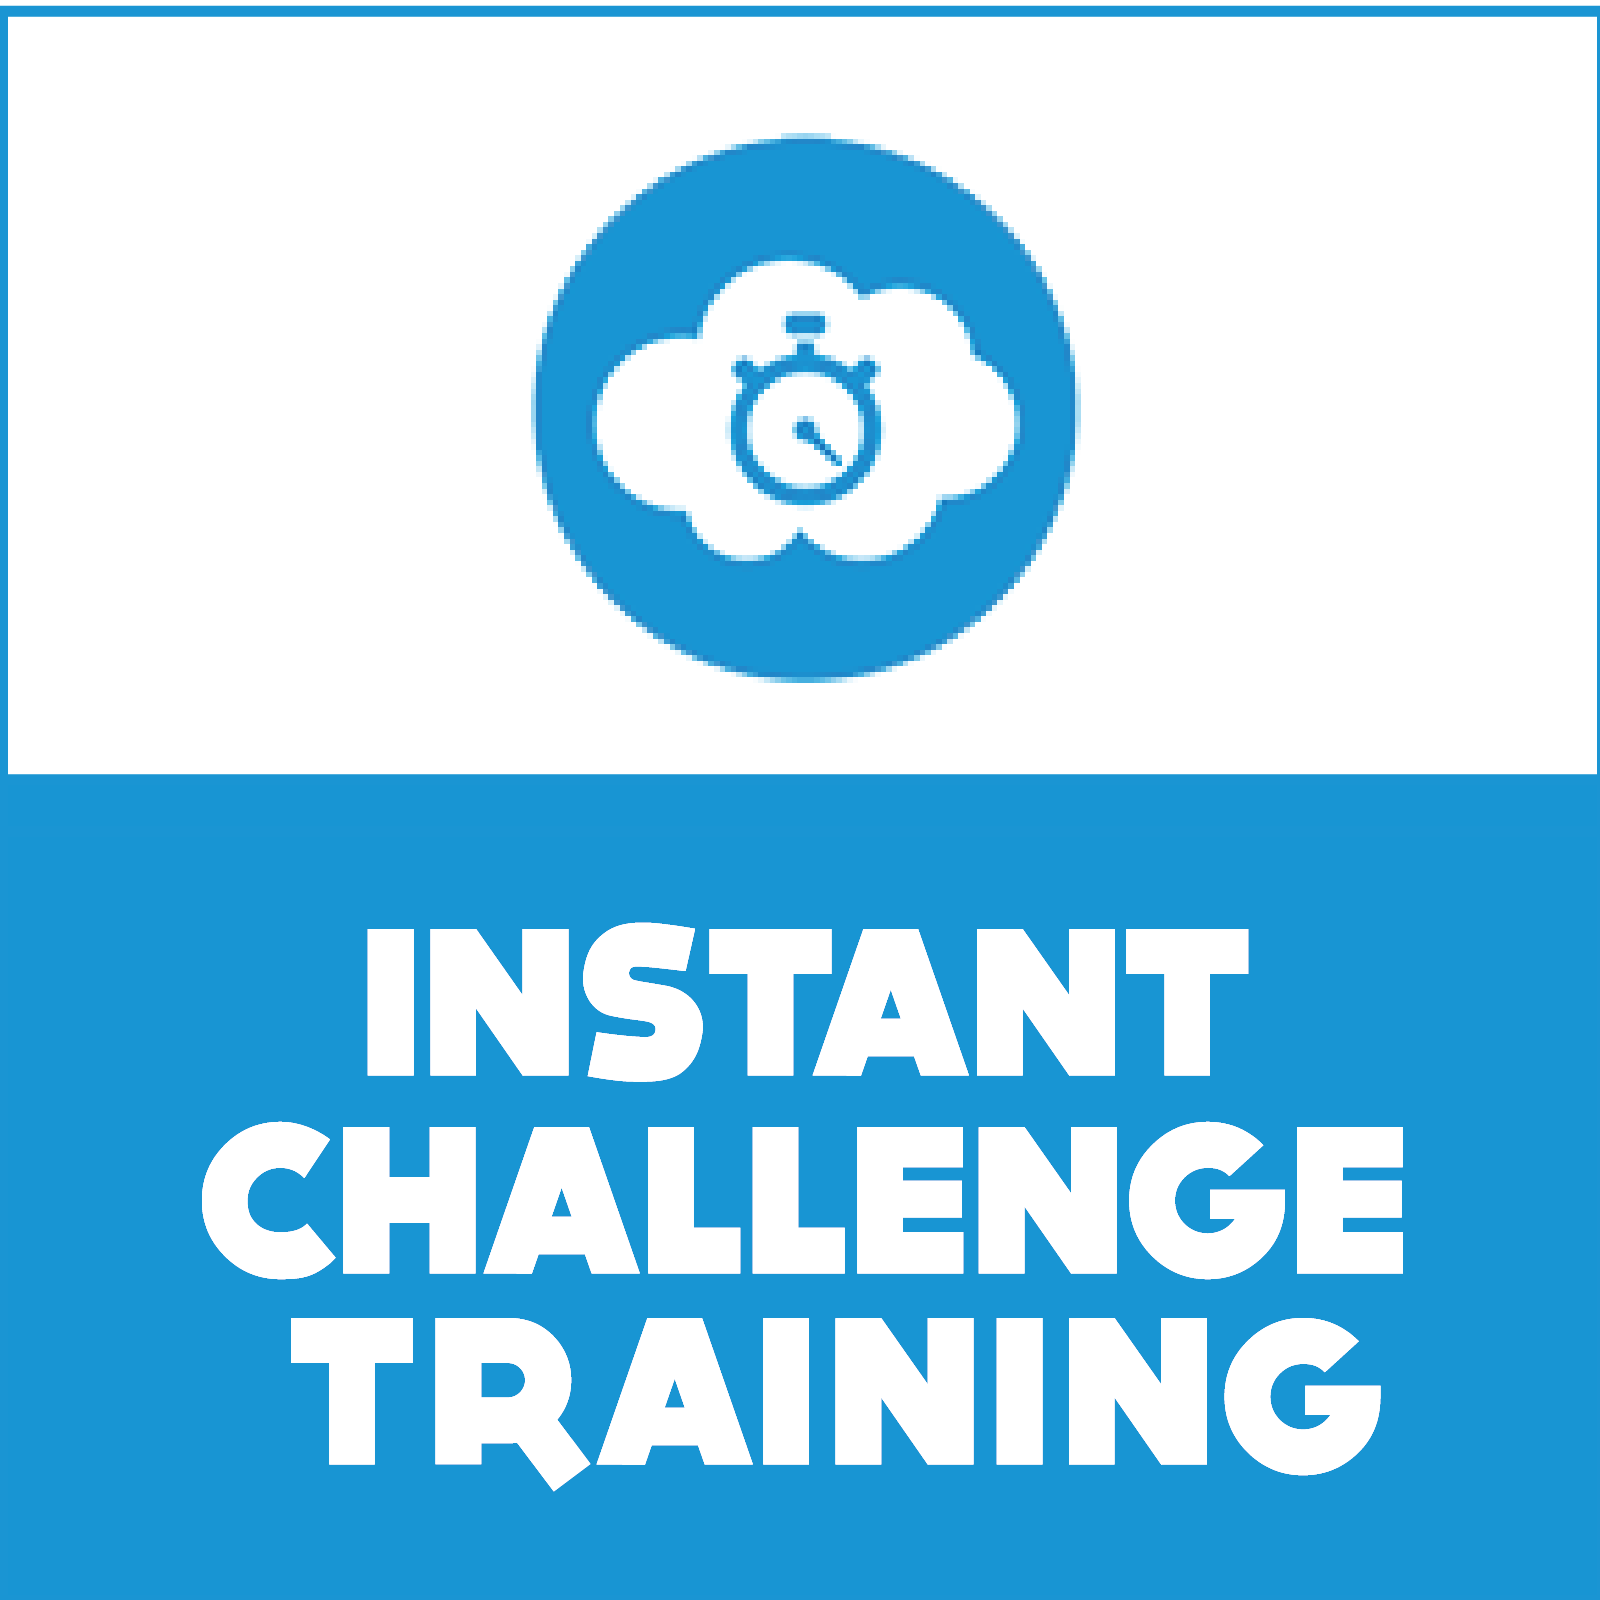 Instant Challenge Training-vertical-01.png